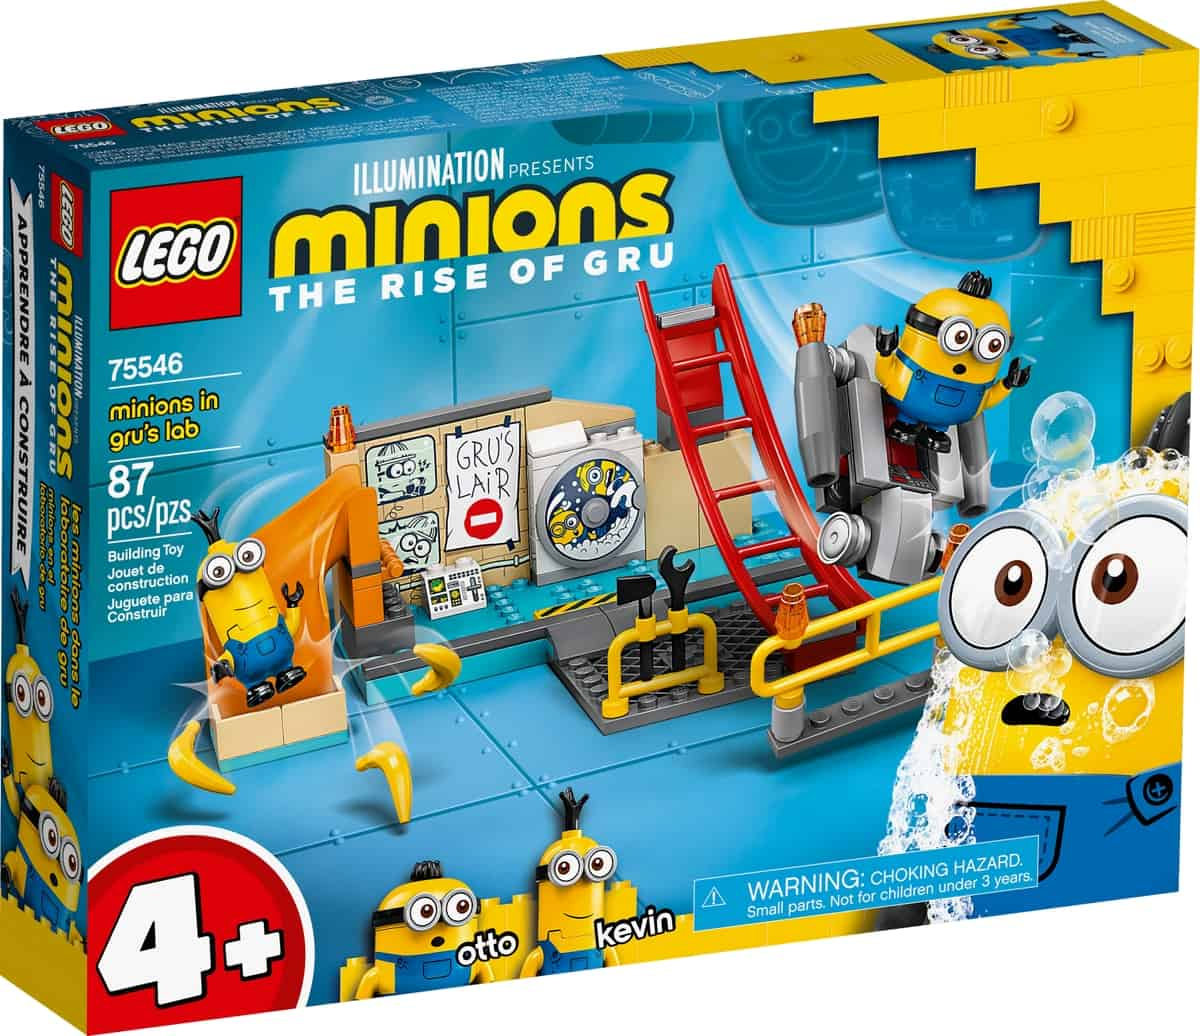 lego 75546 minions in grus lab